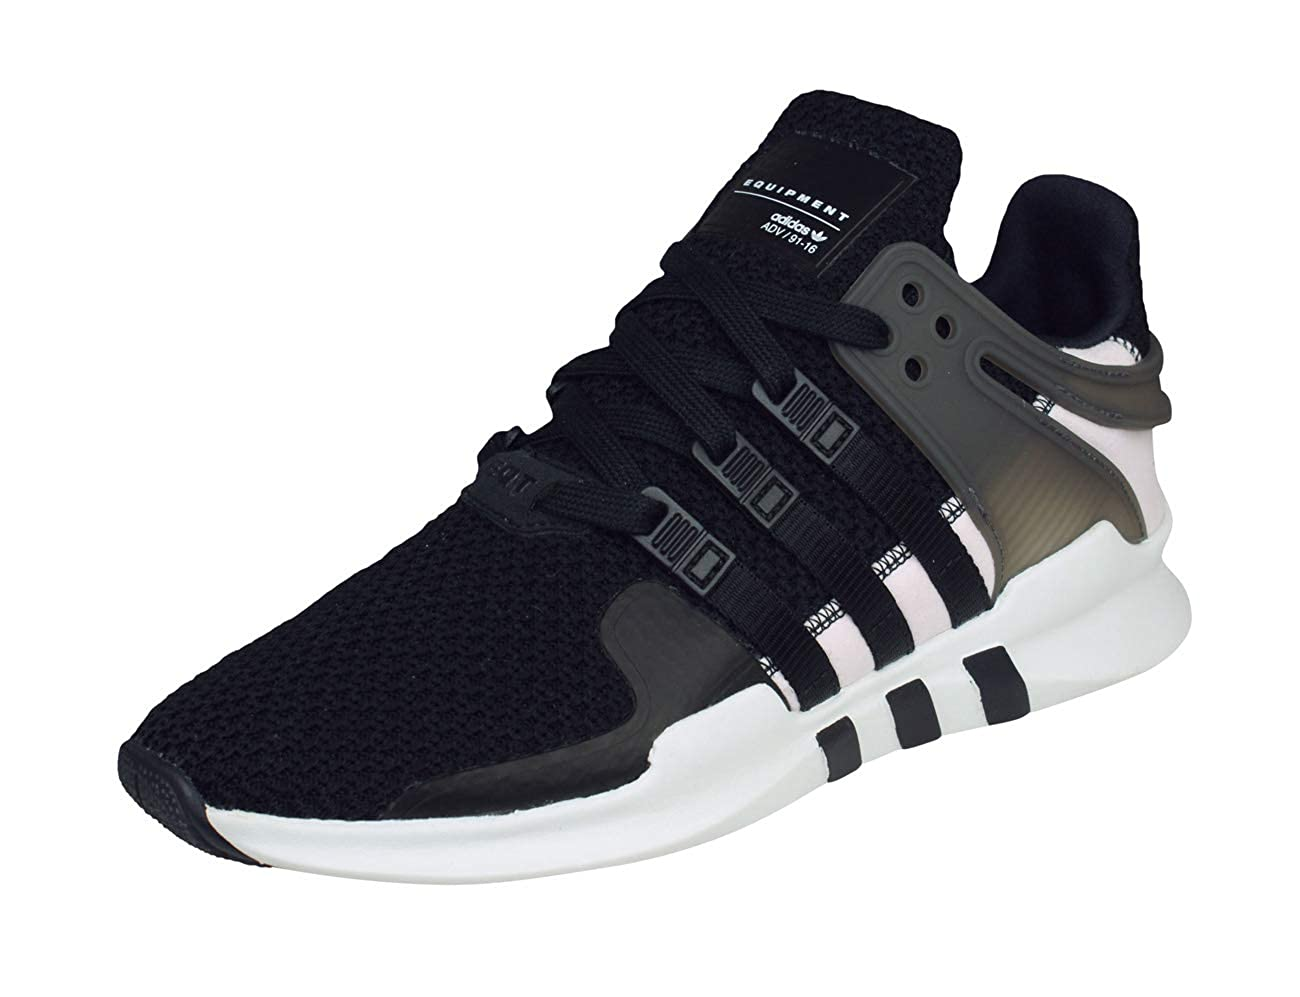 promo code 9bfea 22588 Amazon.com  adidas Originals EQT Support Adv Womens SneakersShoes   Running